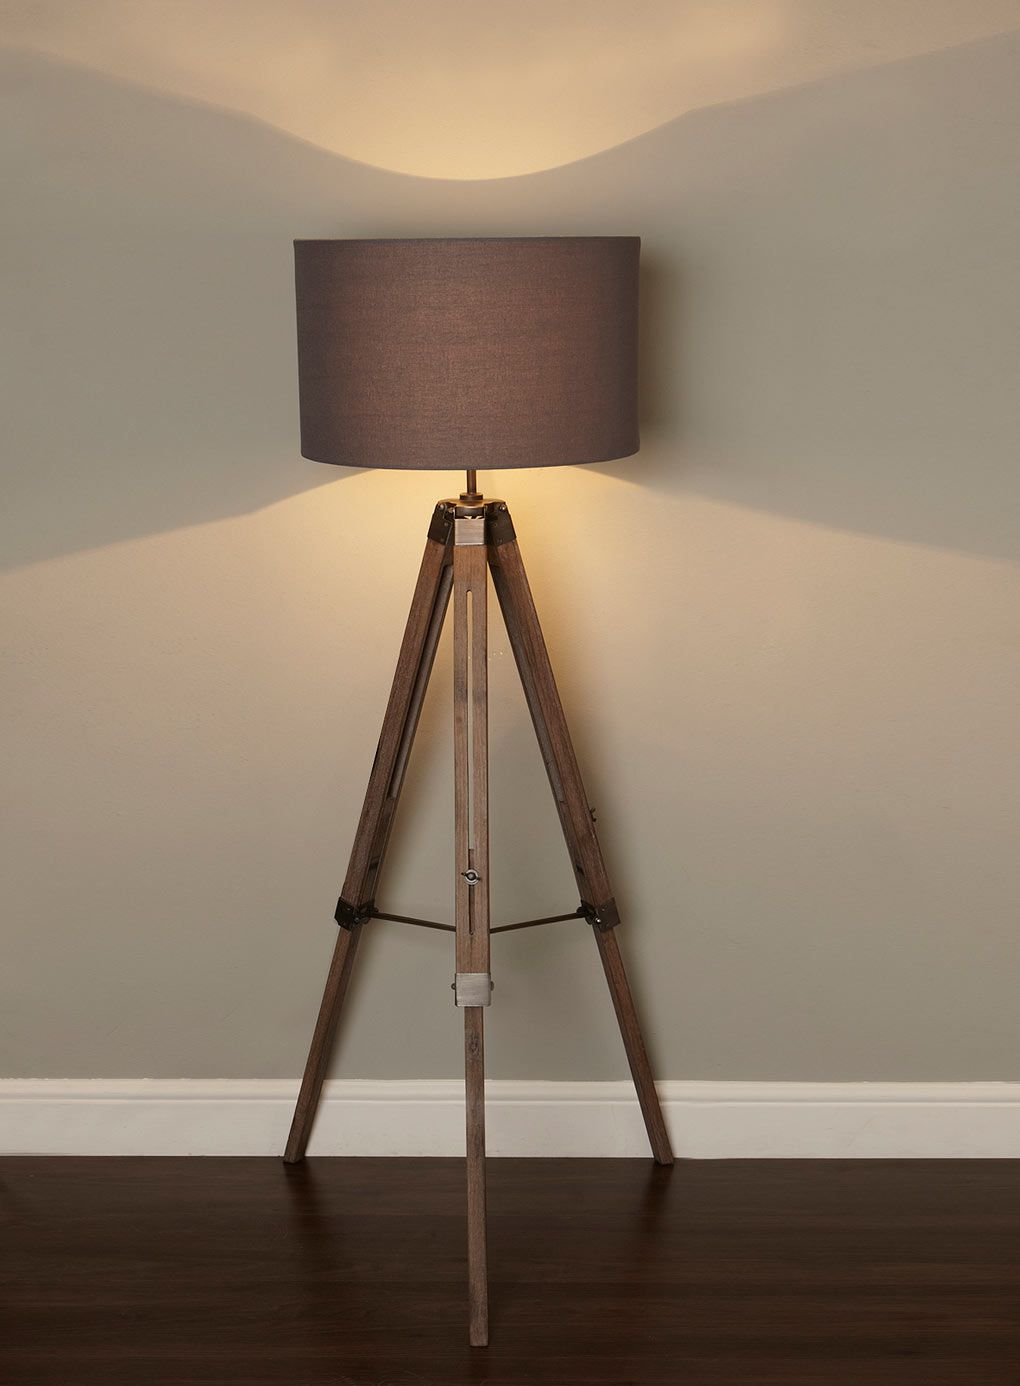 Harley tripod floor lamp can be adjusted in hight plus has light bhs illuminate harley tripod floor lamp industrial wooden antique style floor light where is the cord aloadofball Gallery